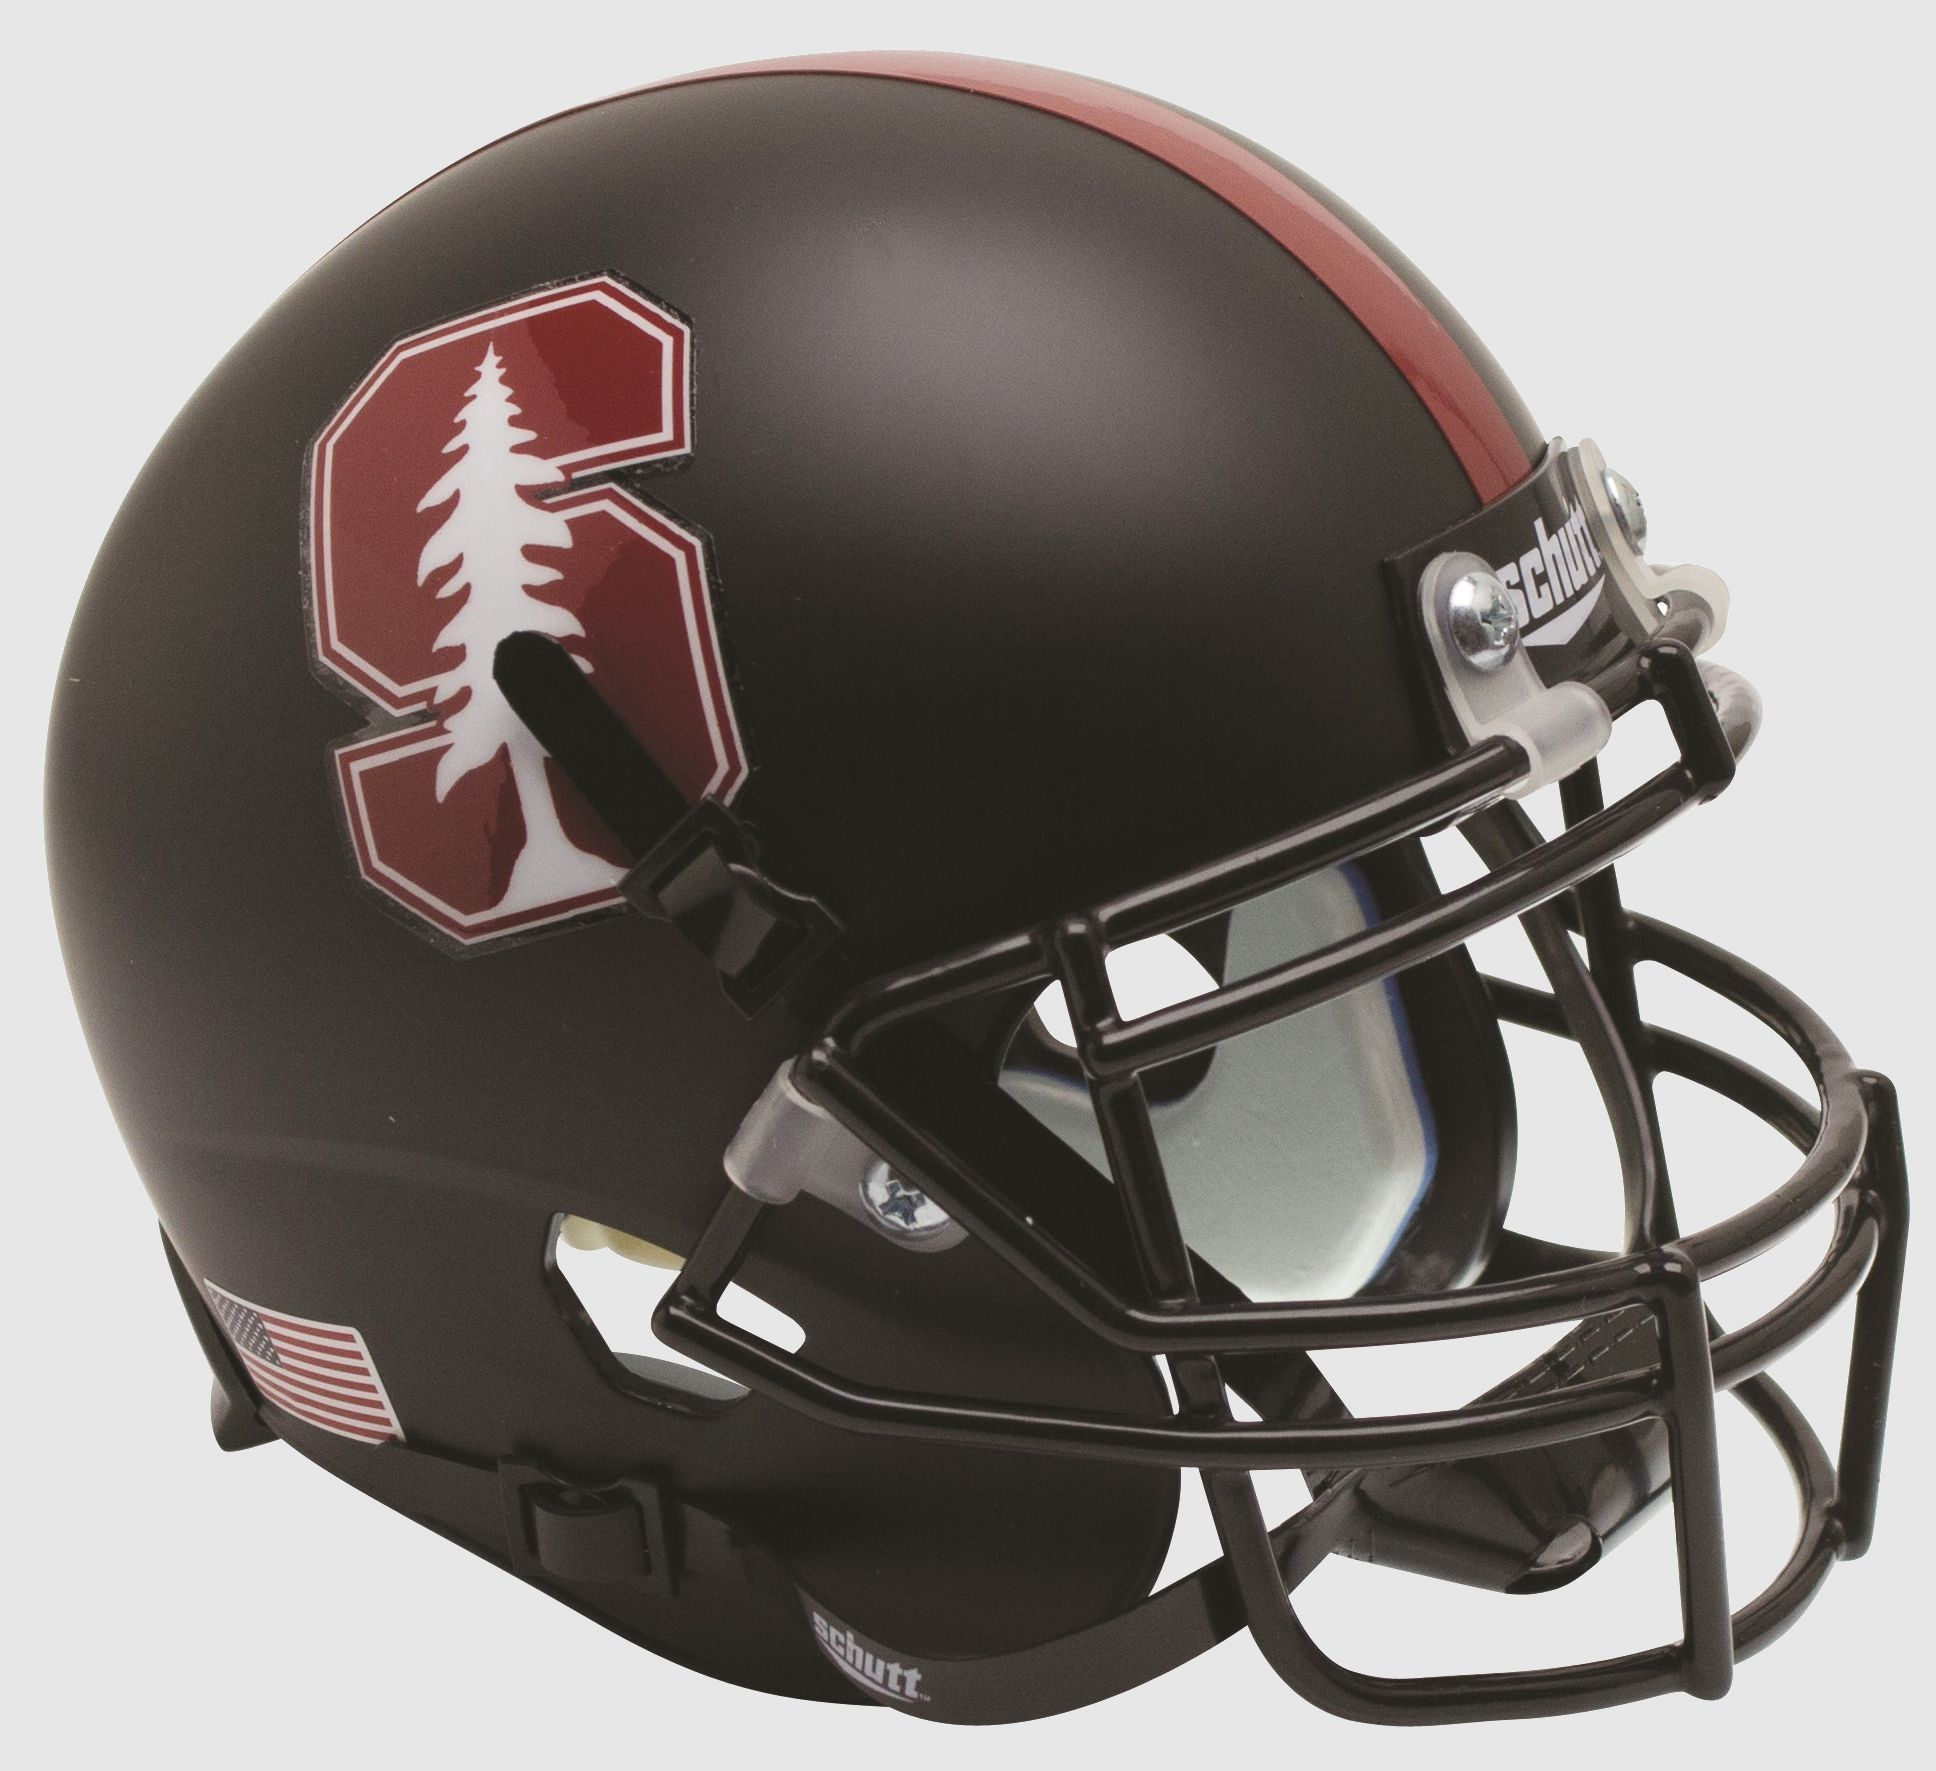 Stanford Football Helmets College Football Helmets Football